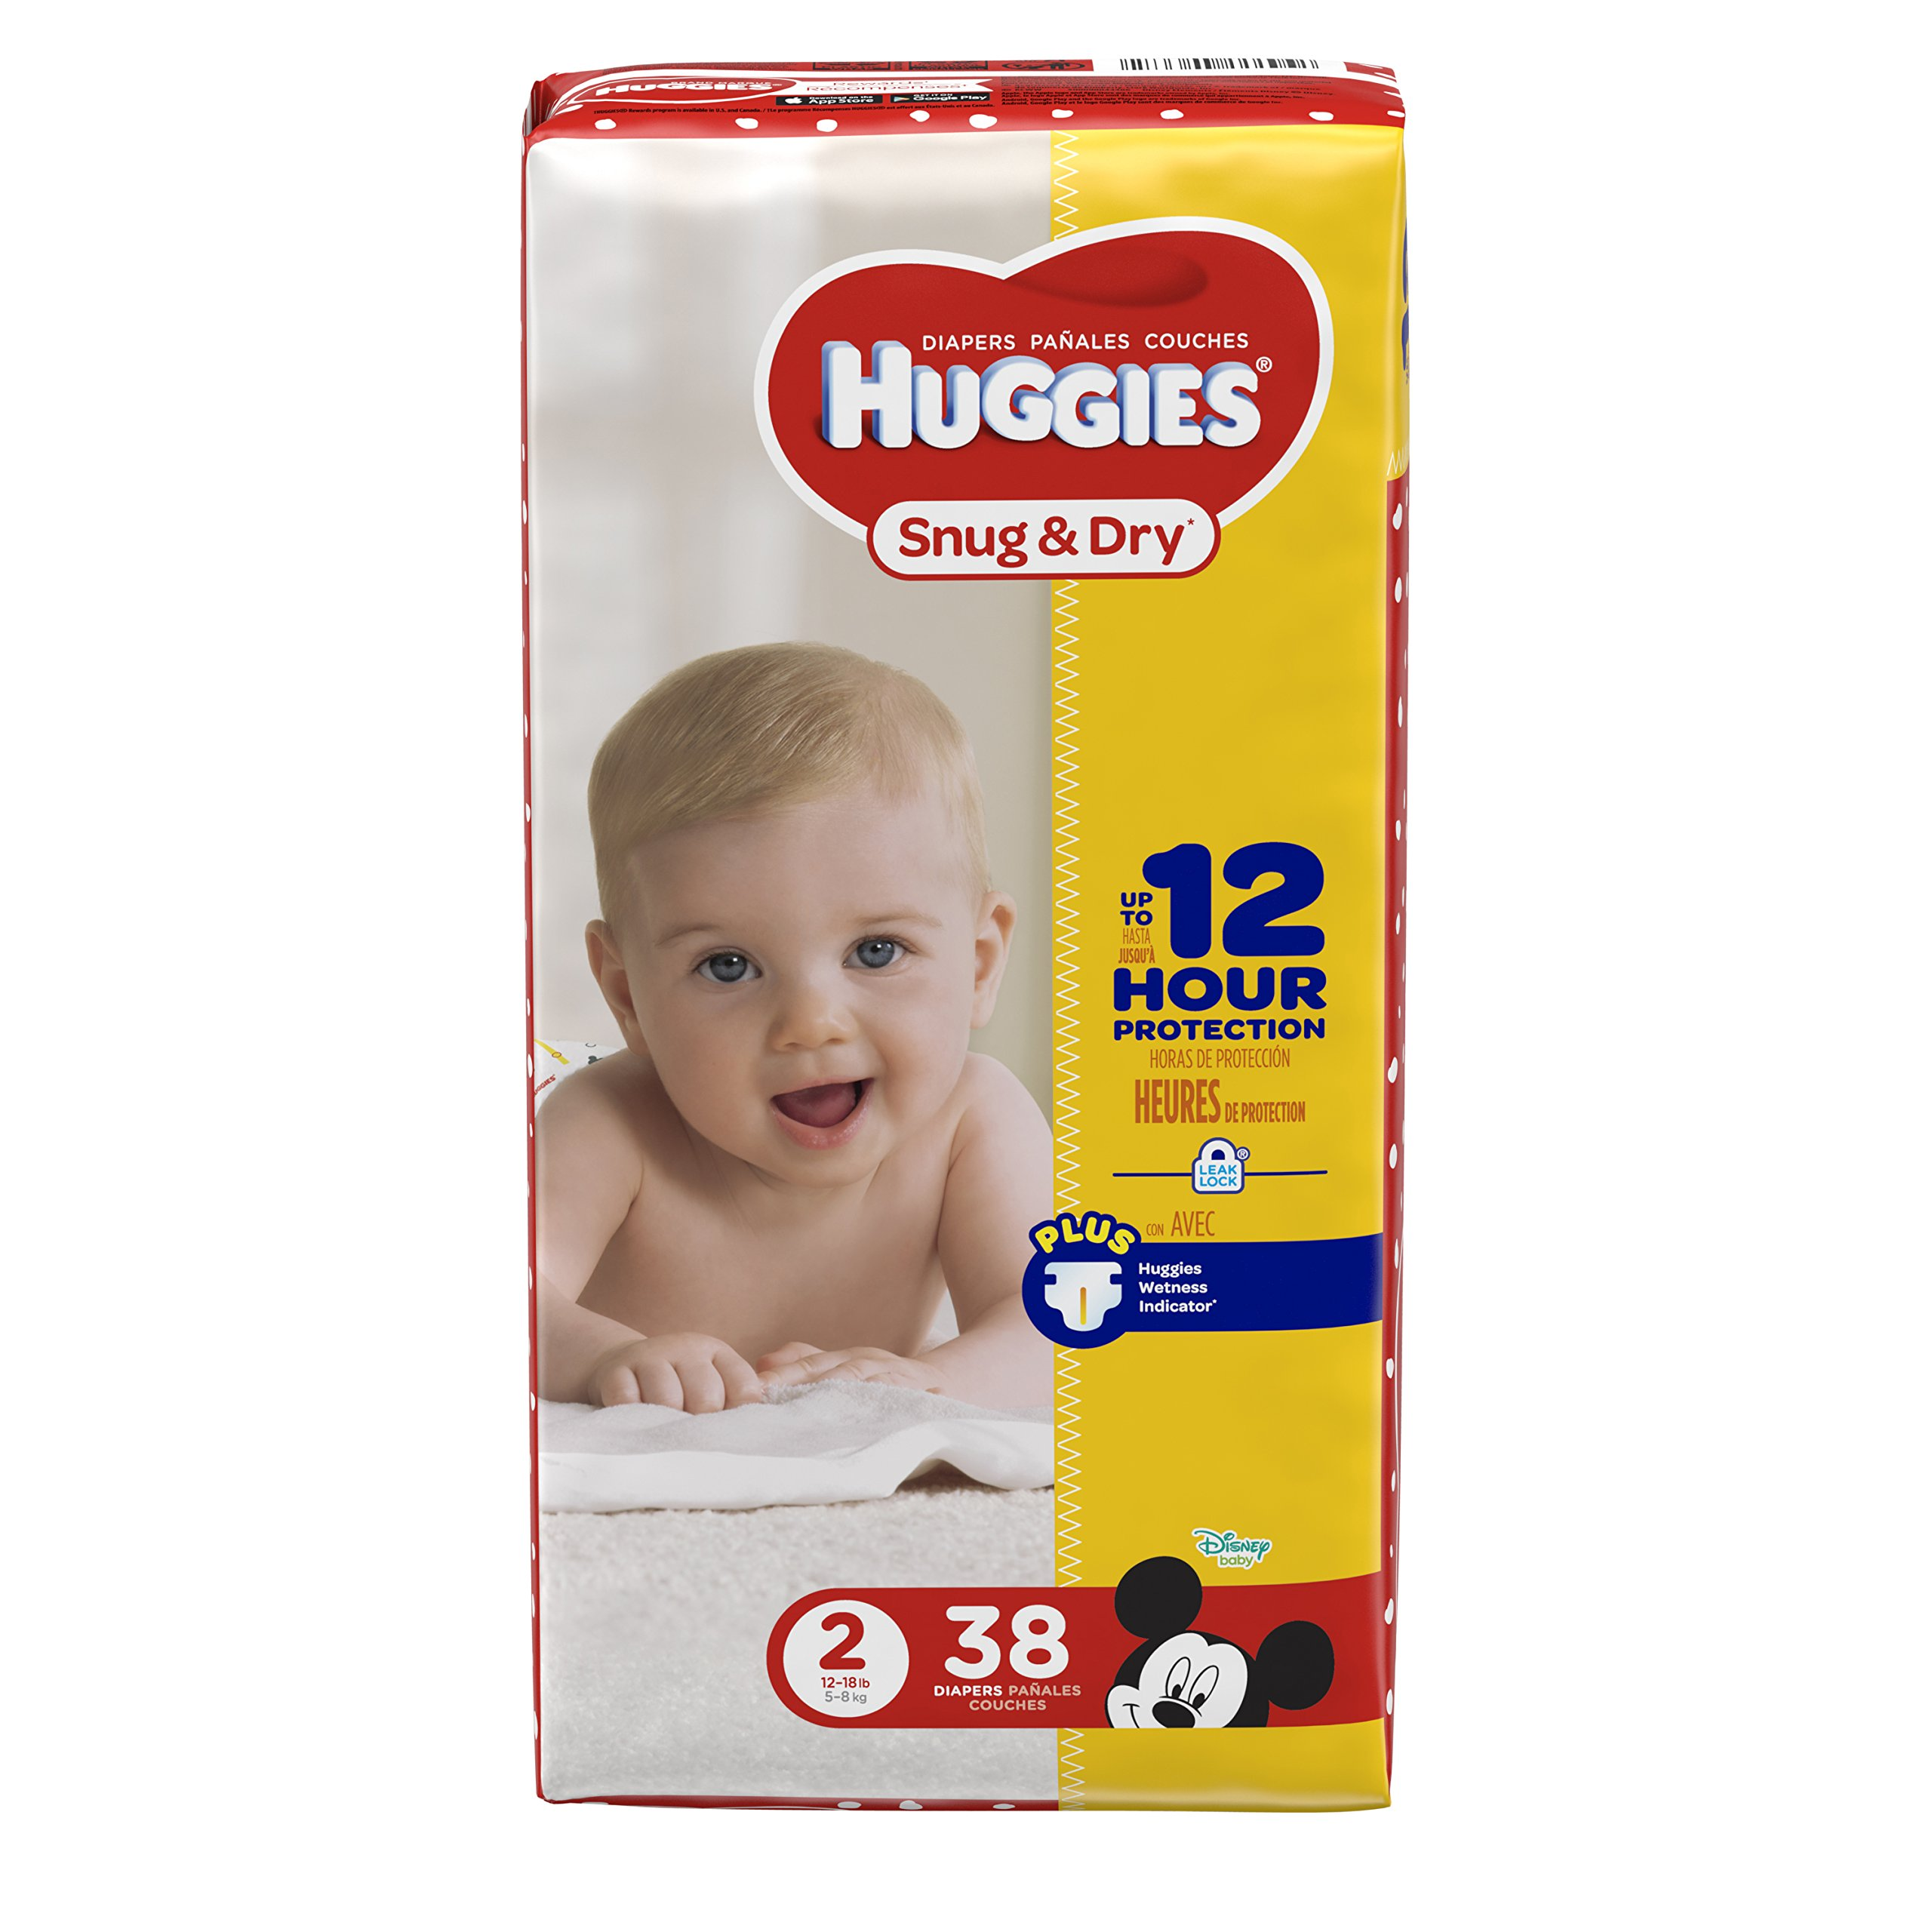 HUGGIES Snug & Dry Diapers, Size 2, 38 Count, JUMBO PACK (Packaging